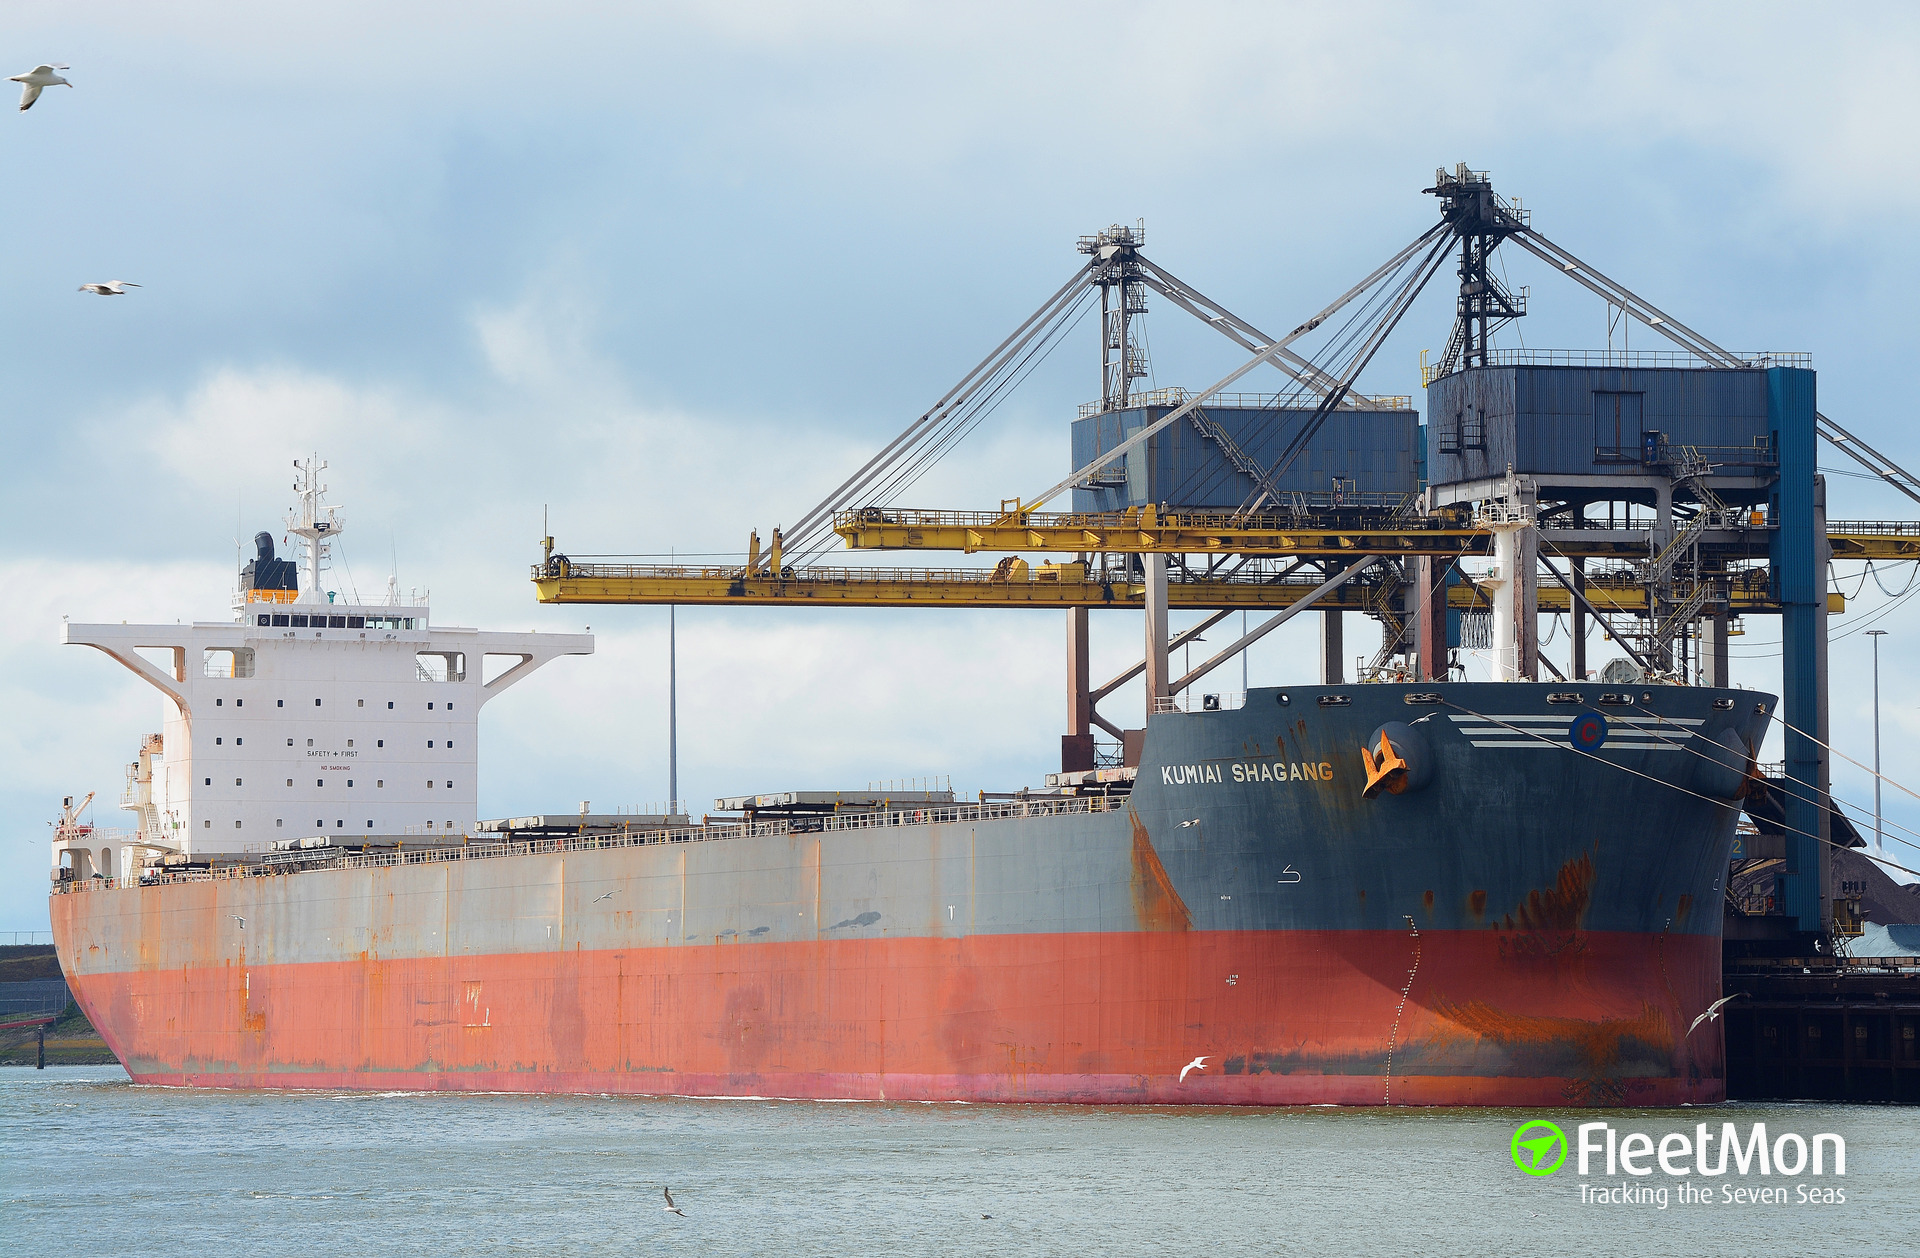 Capesize bulk carrier attacked, Sulu Sea